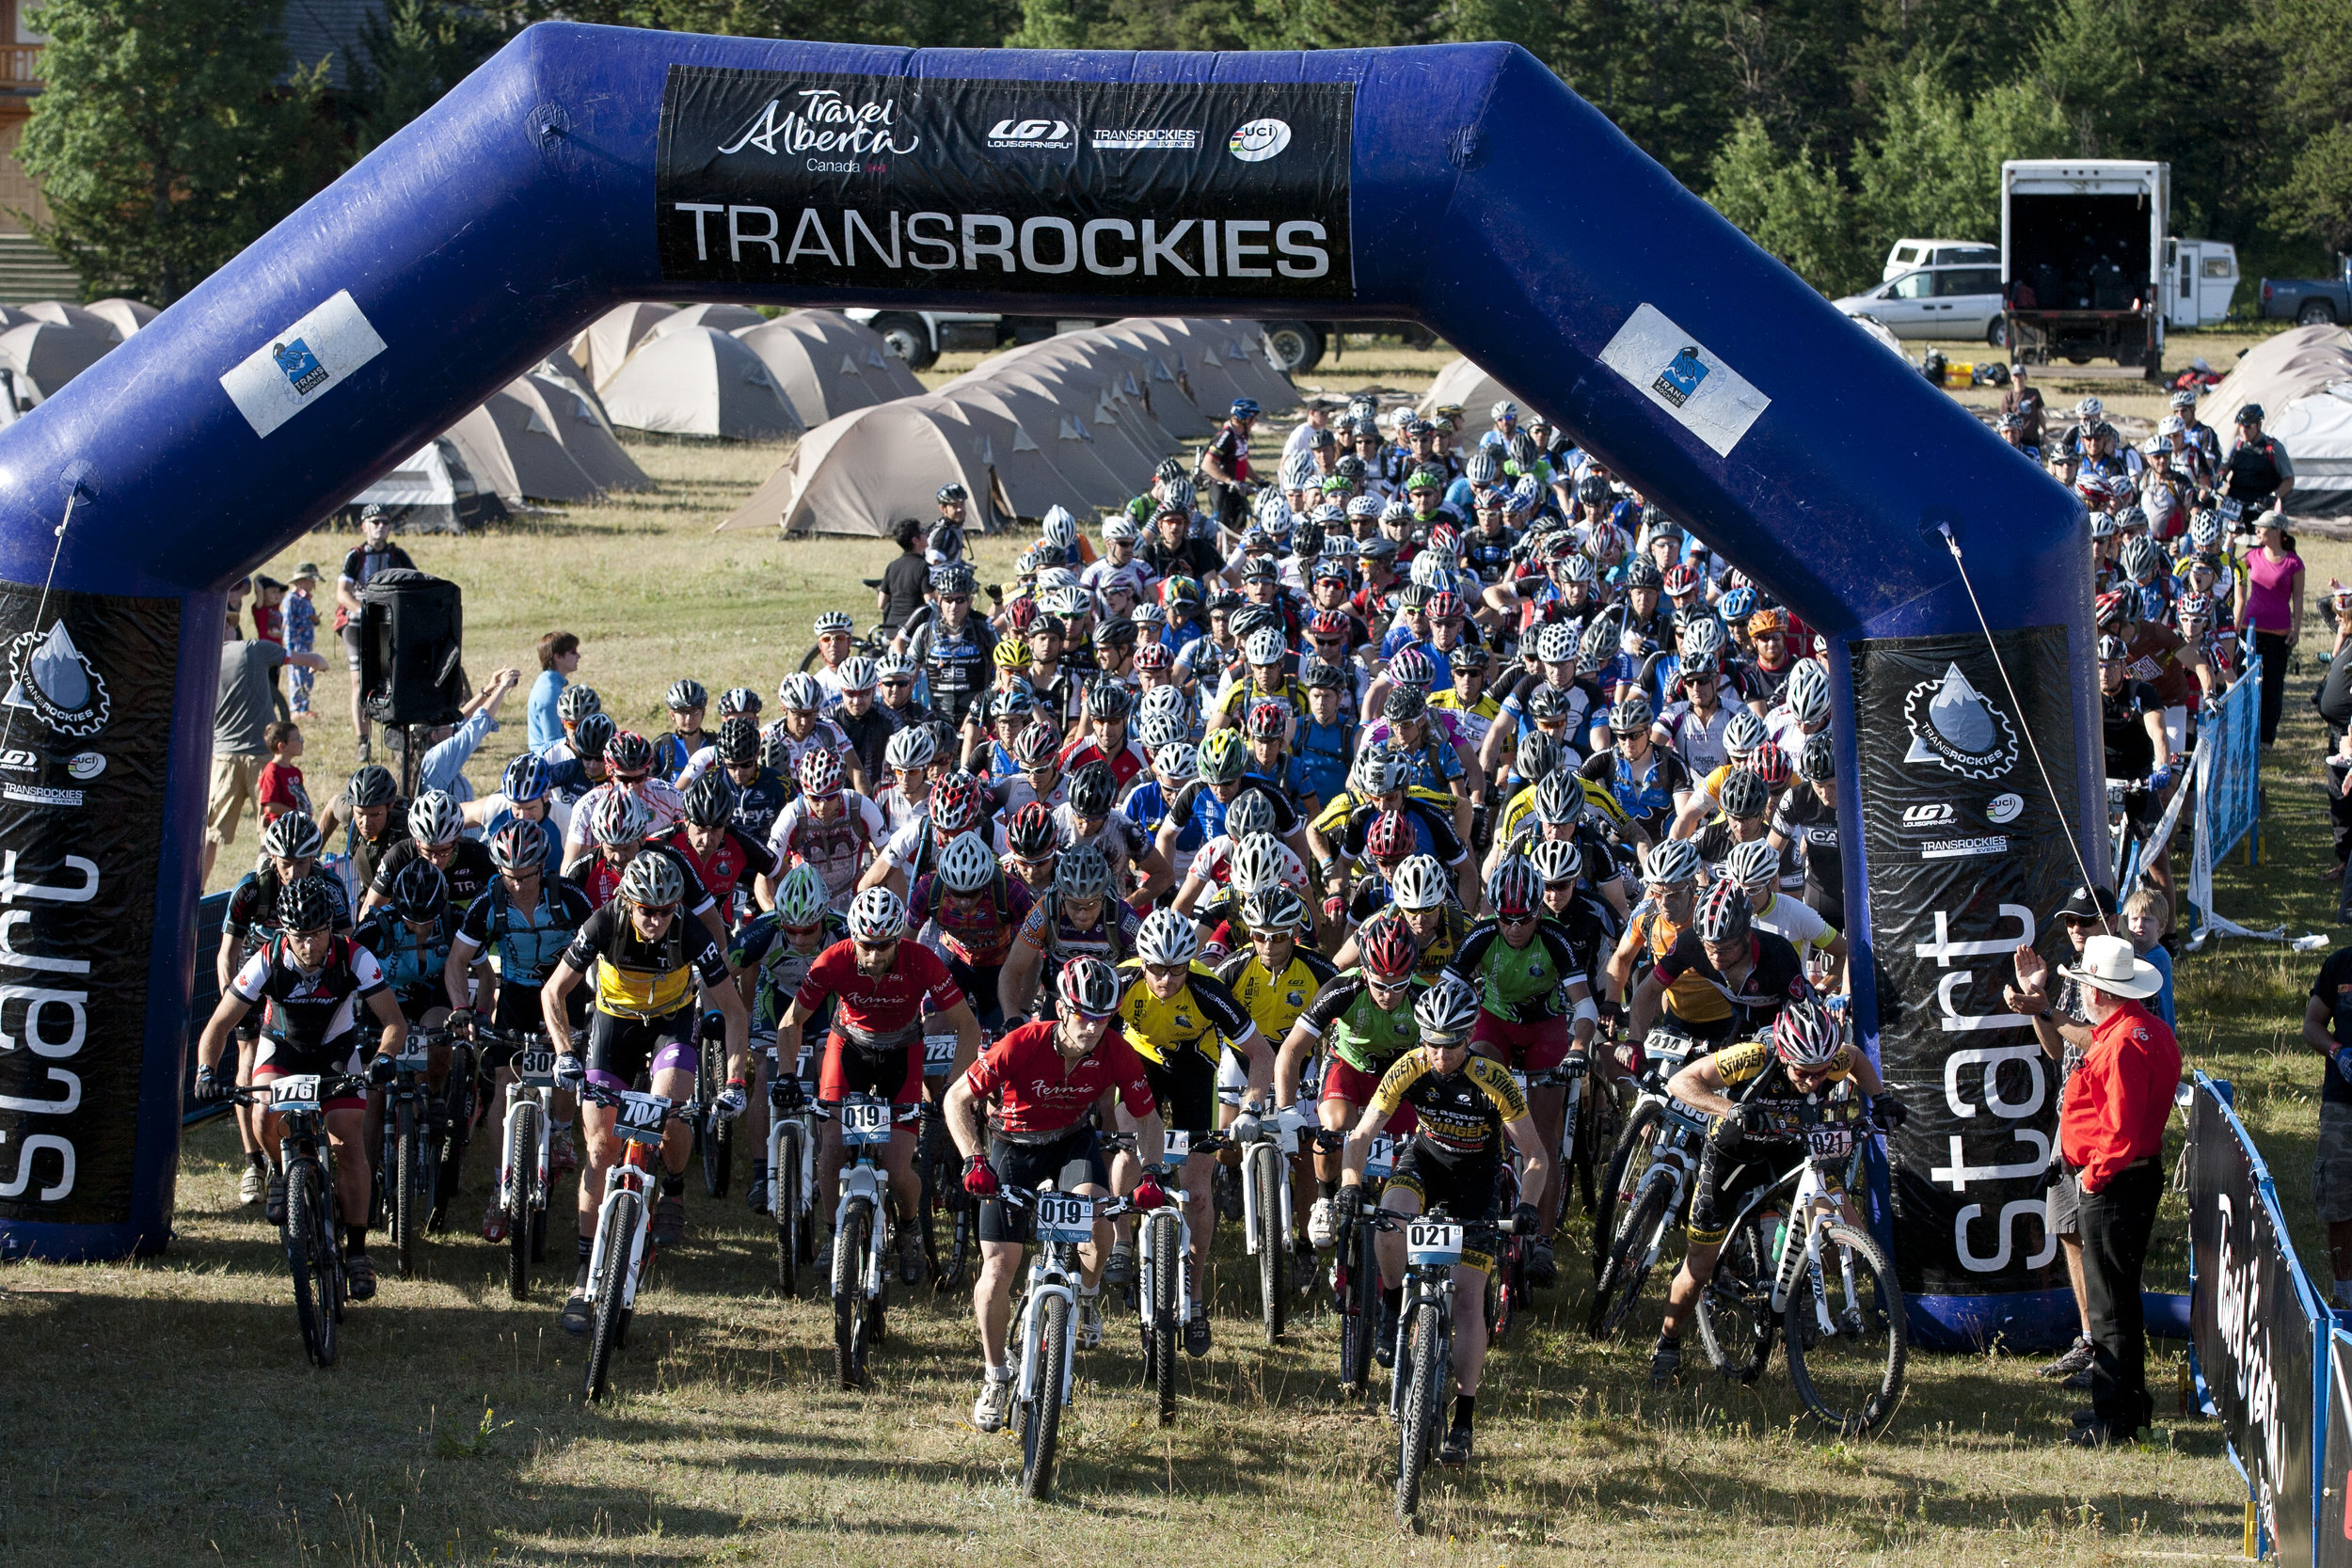 The TransRockies mountain bike stage race start line.